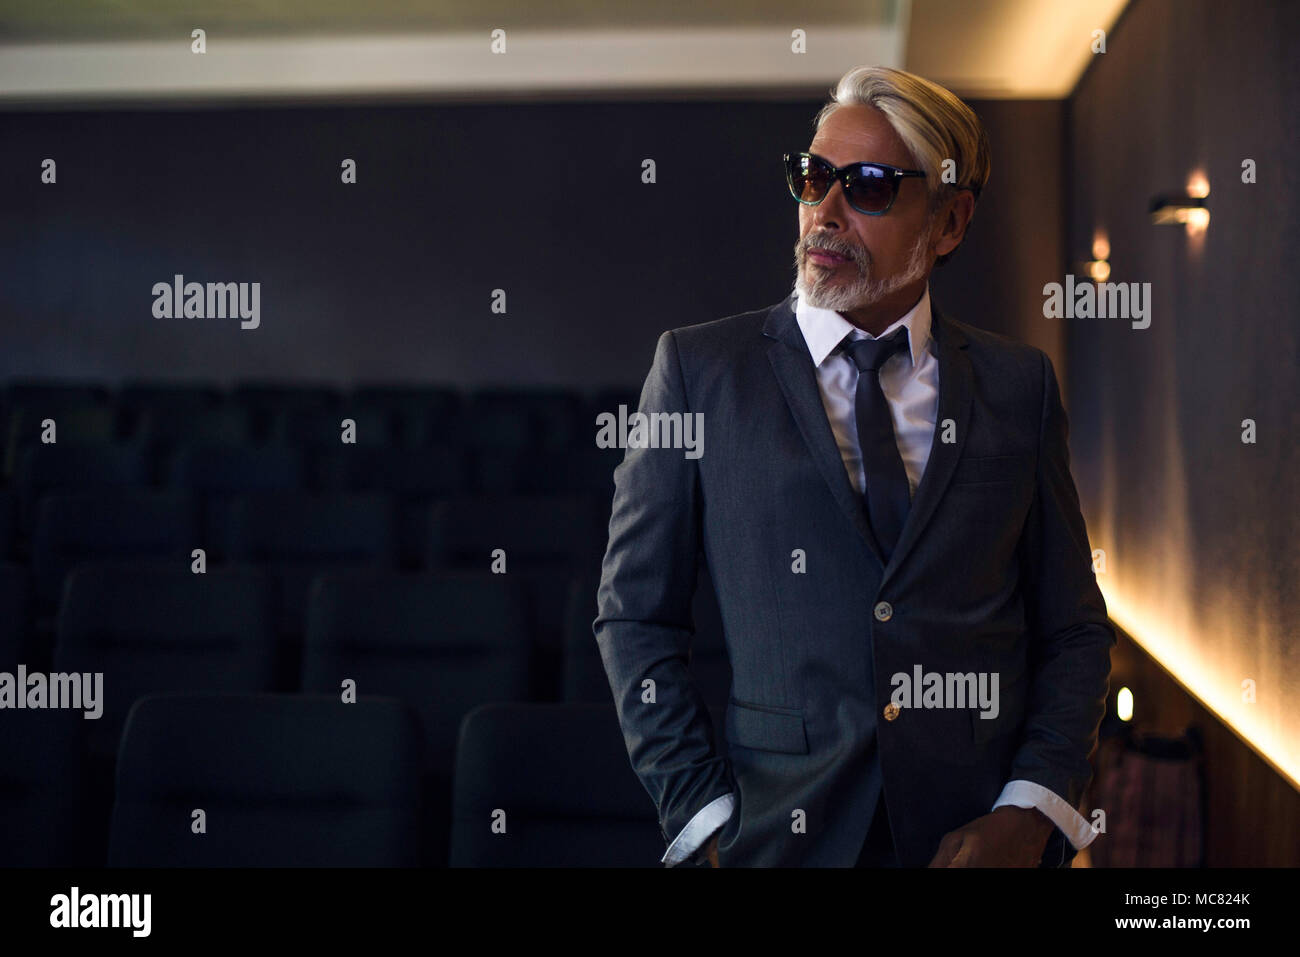 Man wearing suit and sunglasses - Stock Image